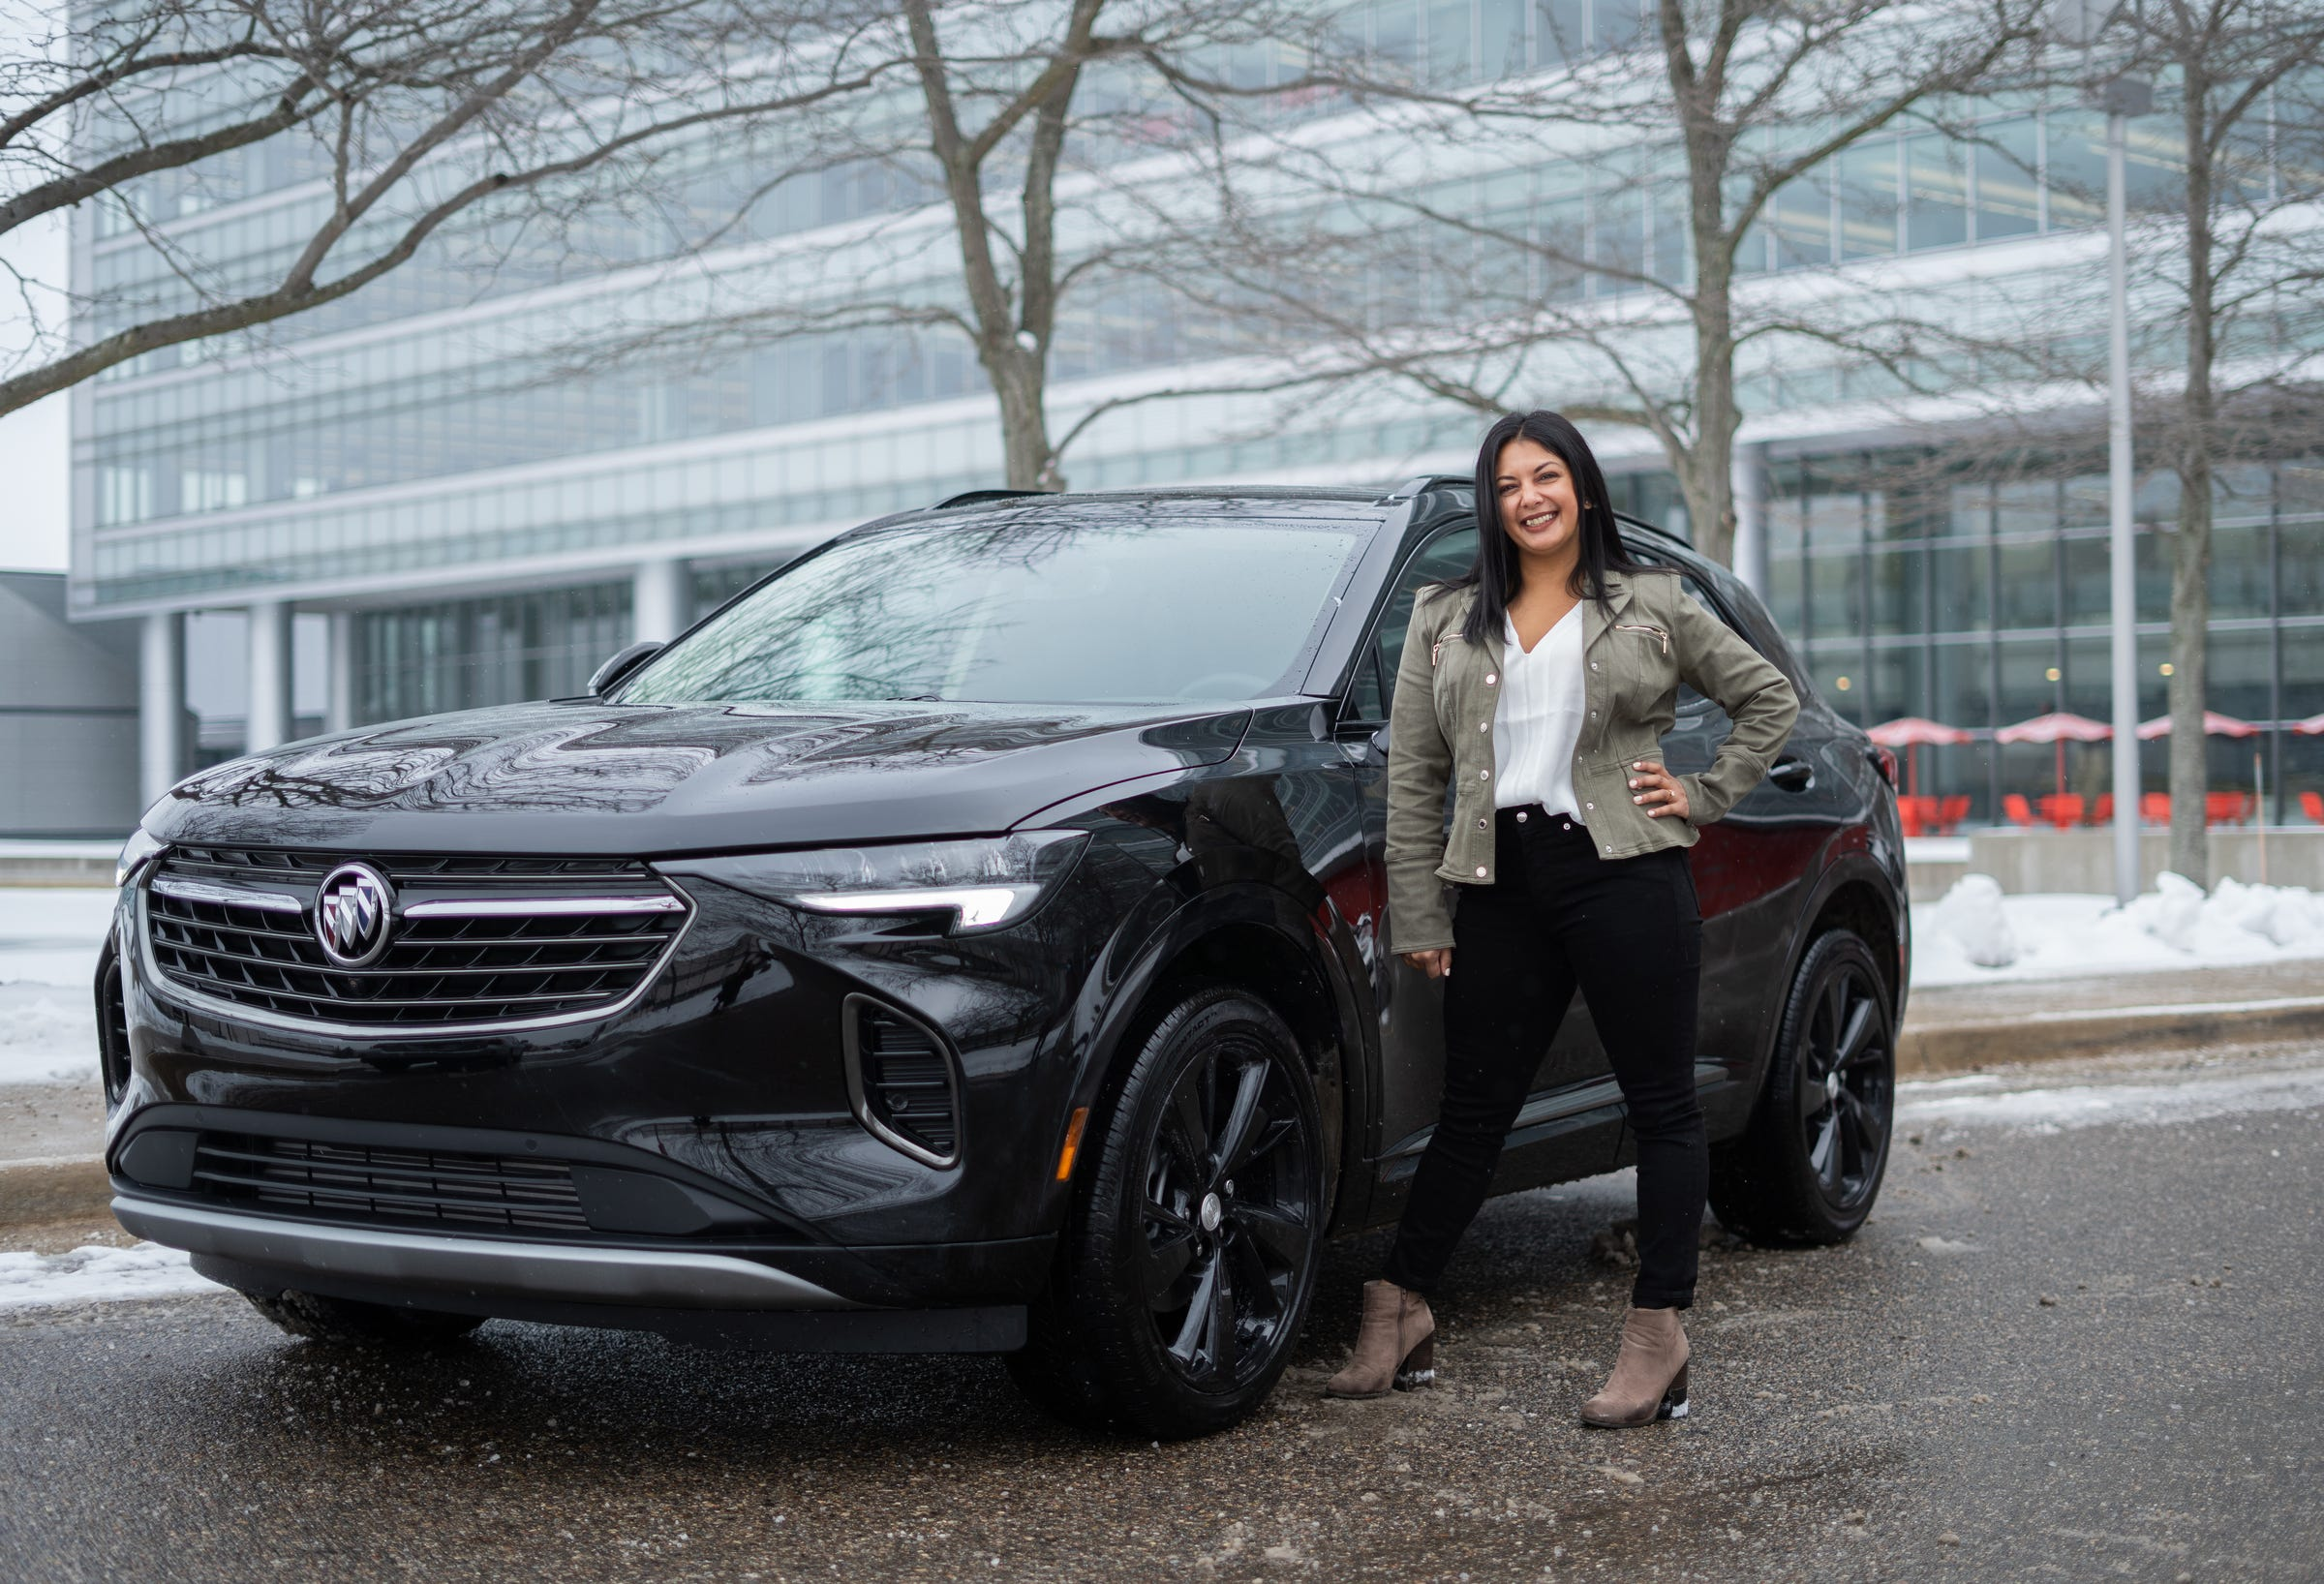 GM's Buick brand gains traction among women